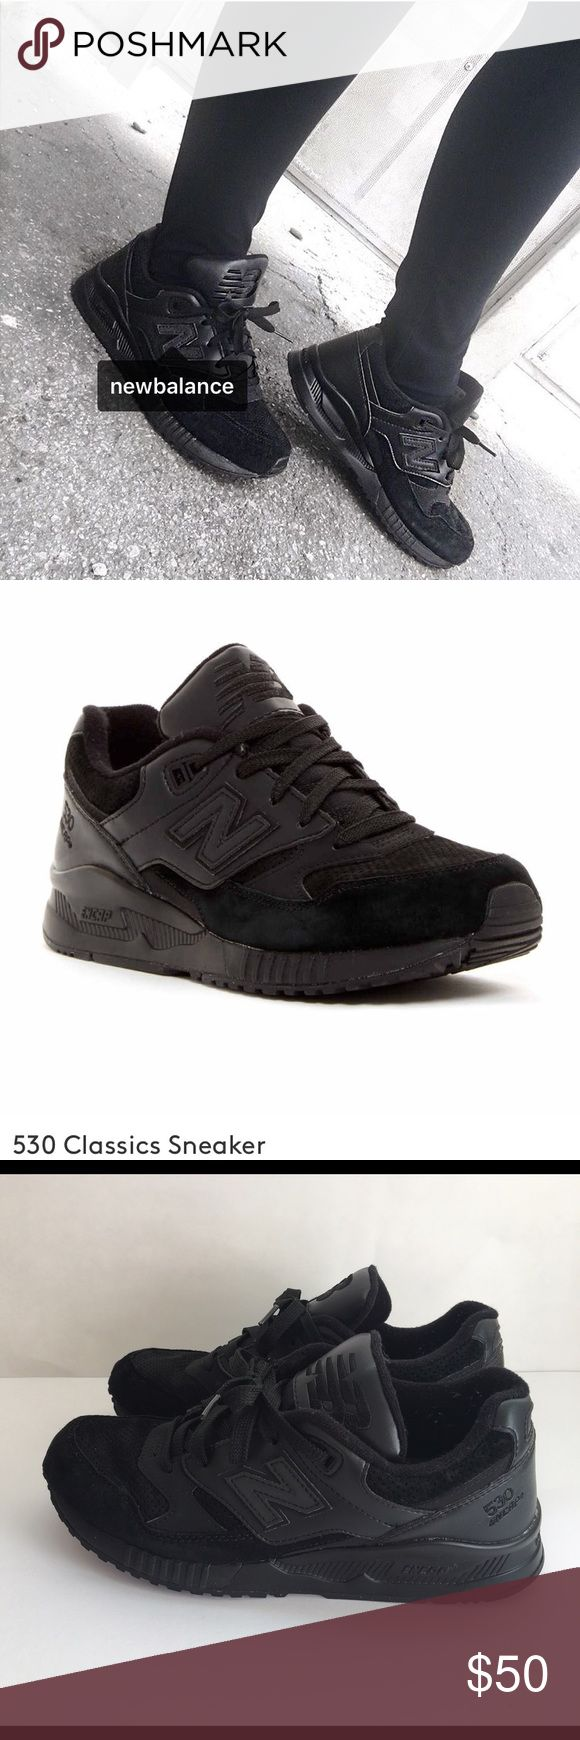 *New Balance* Suede Black Classic Sneaker 7 530 Classic Black Sneaker with Suede in US 7. Bought in September 2016 ( 6 months old) in Great Condition. New Balance Shoes Sneakers